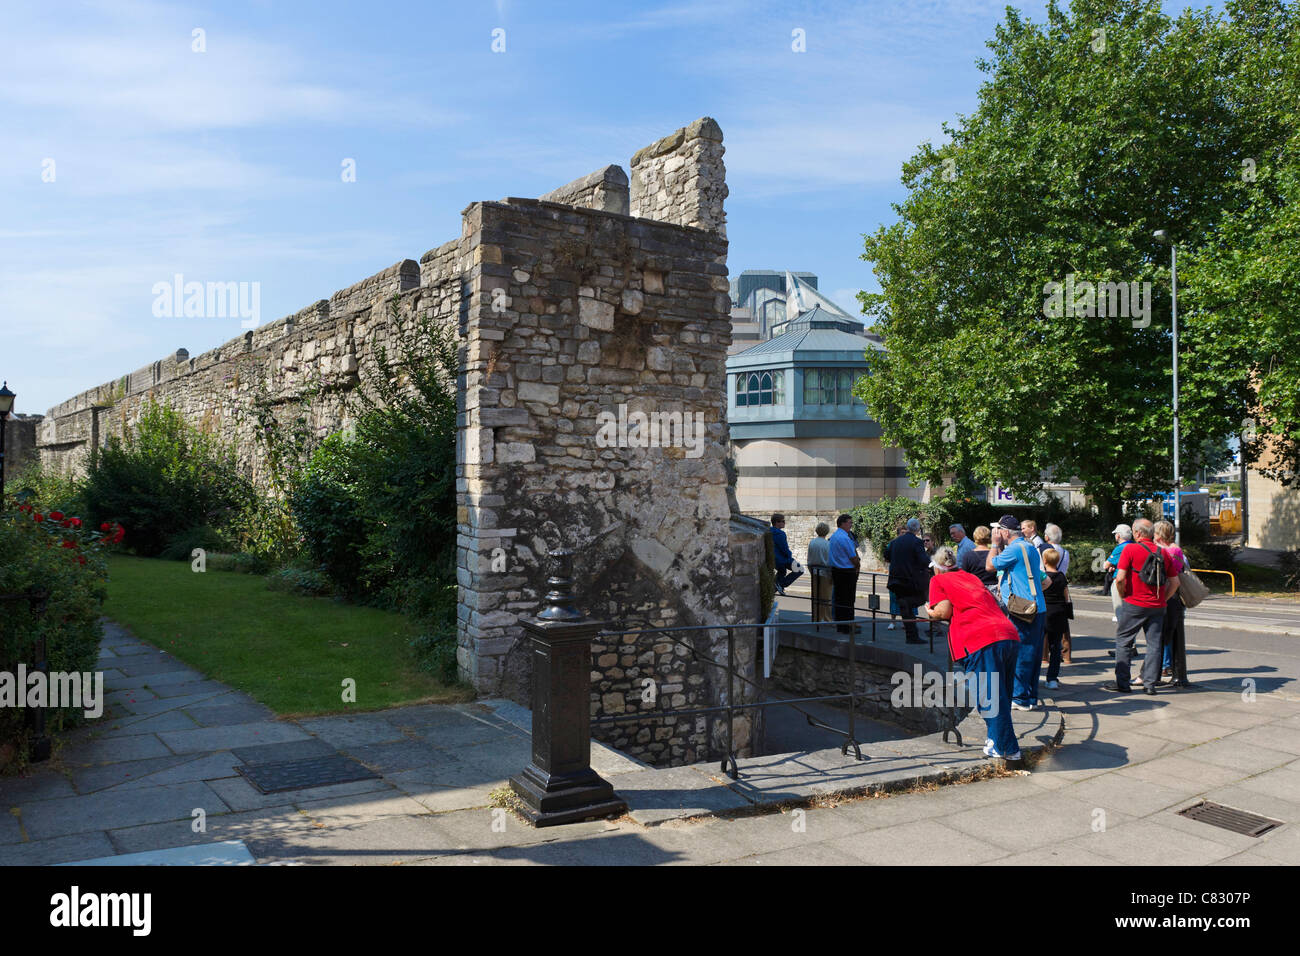 Visitors on a tour of the Old City Walls near Castle Square, Southampton, Hampshire, England, UK - Stock Image